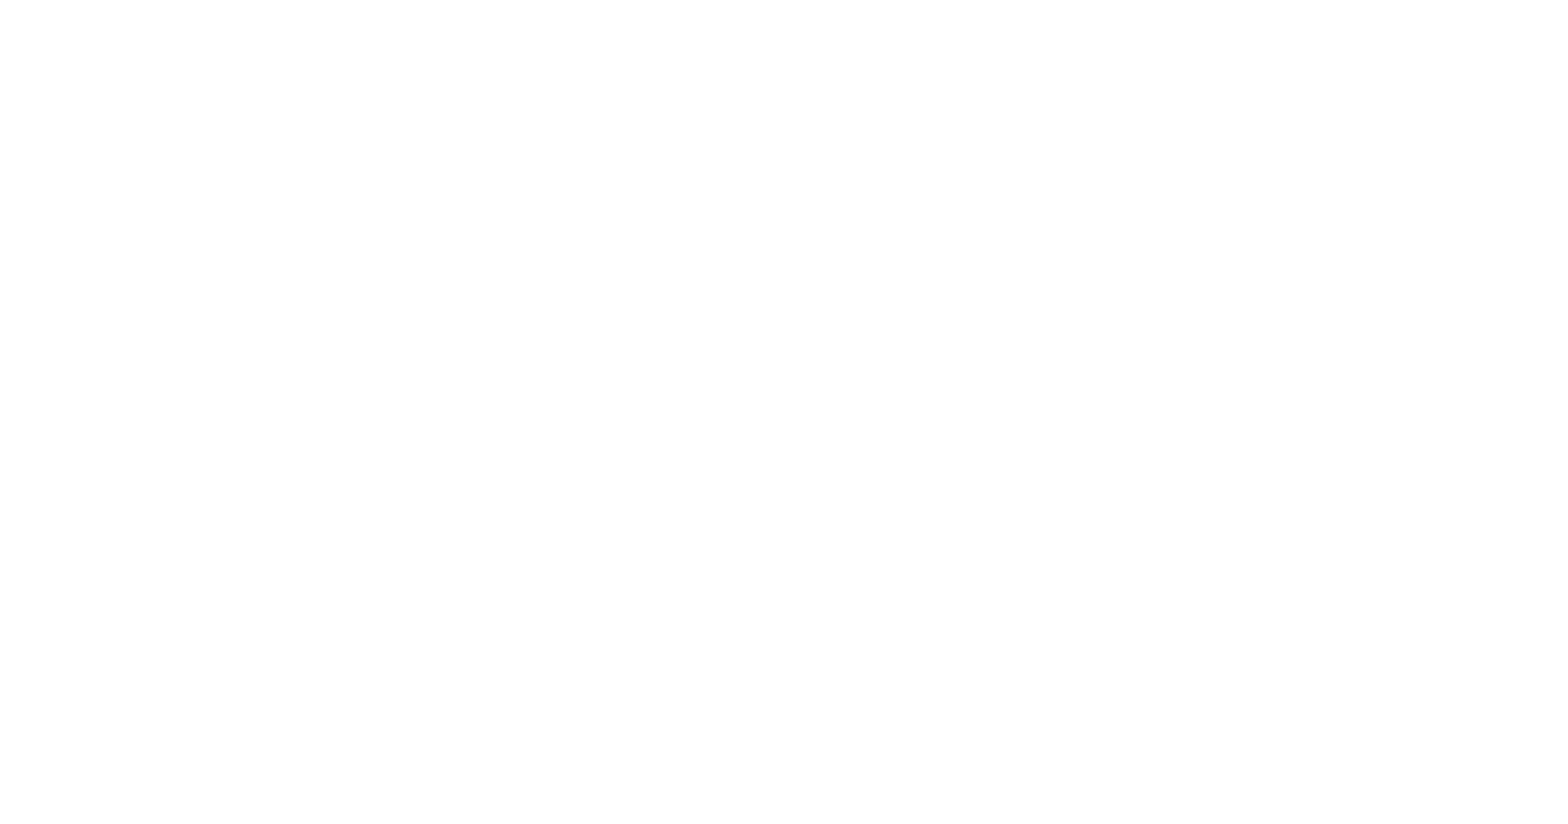 Death band logo png. Killed by